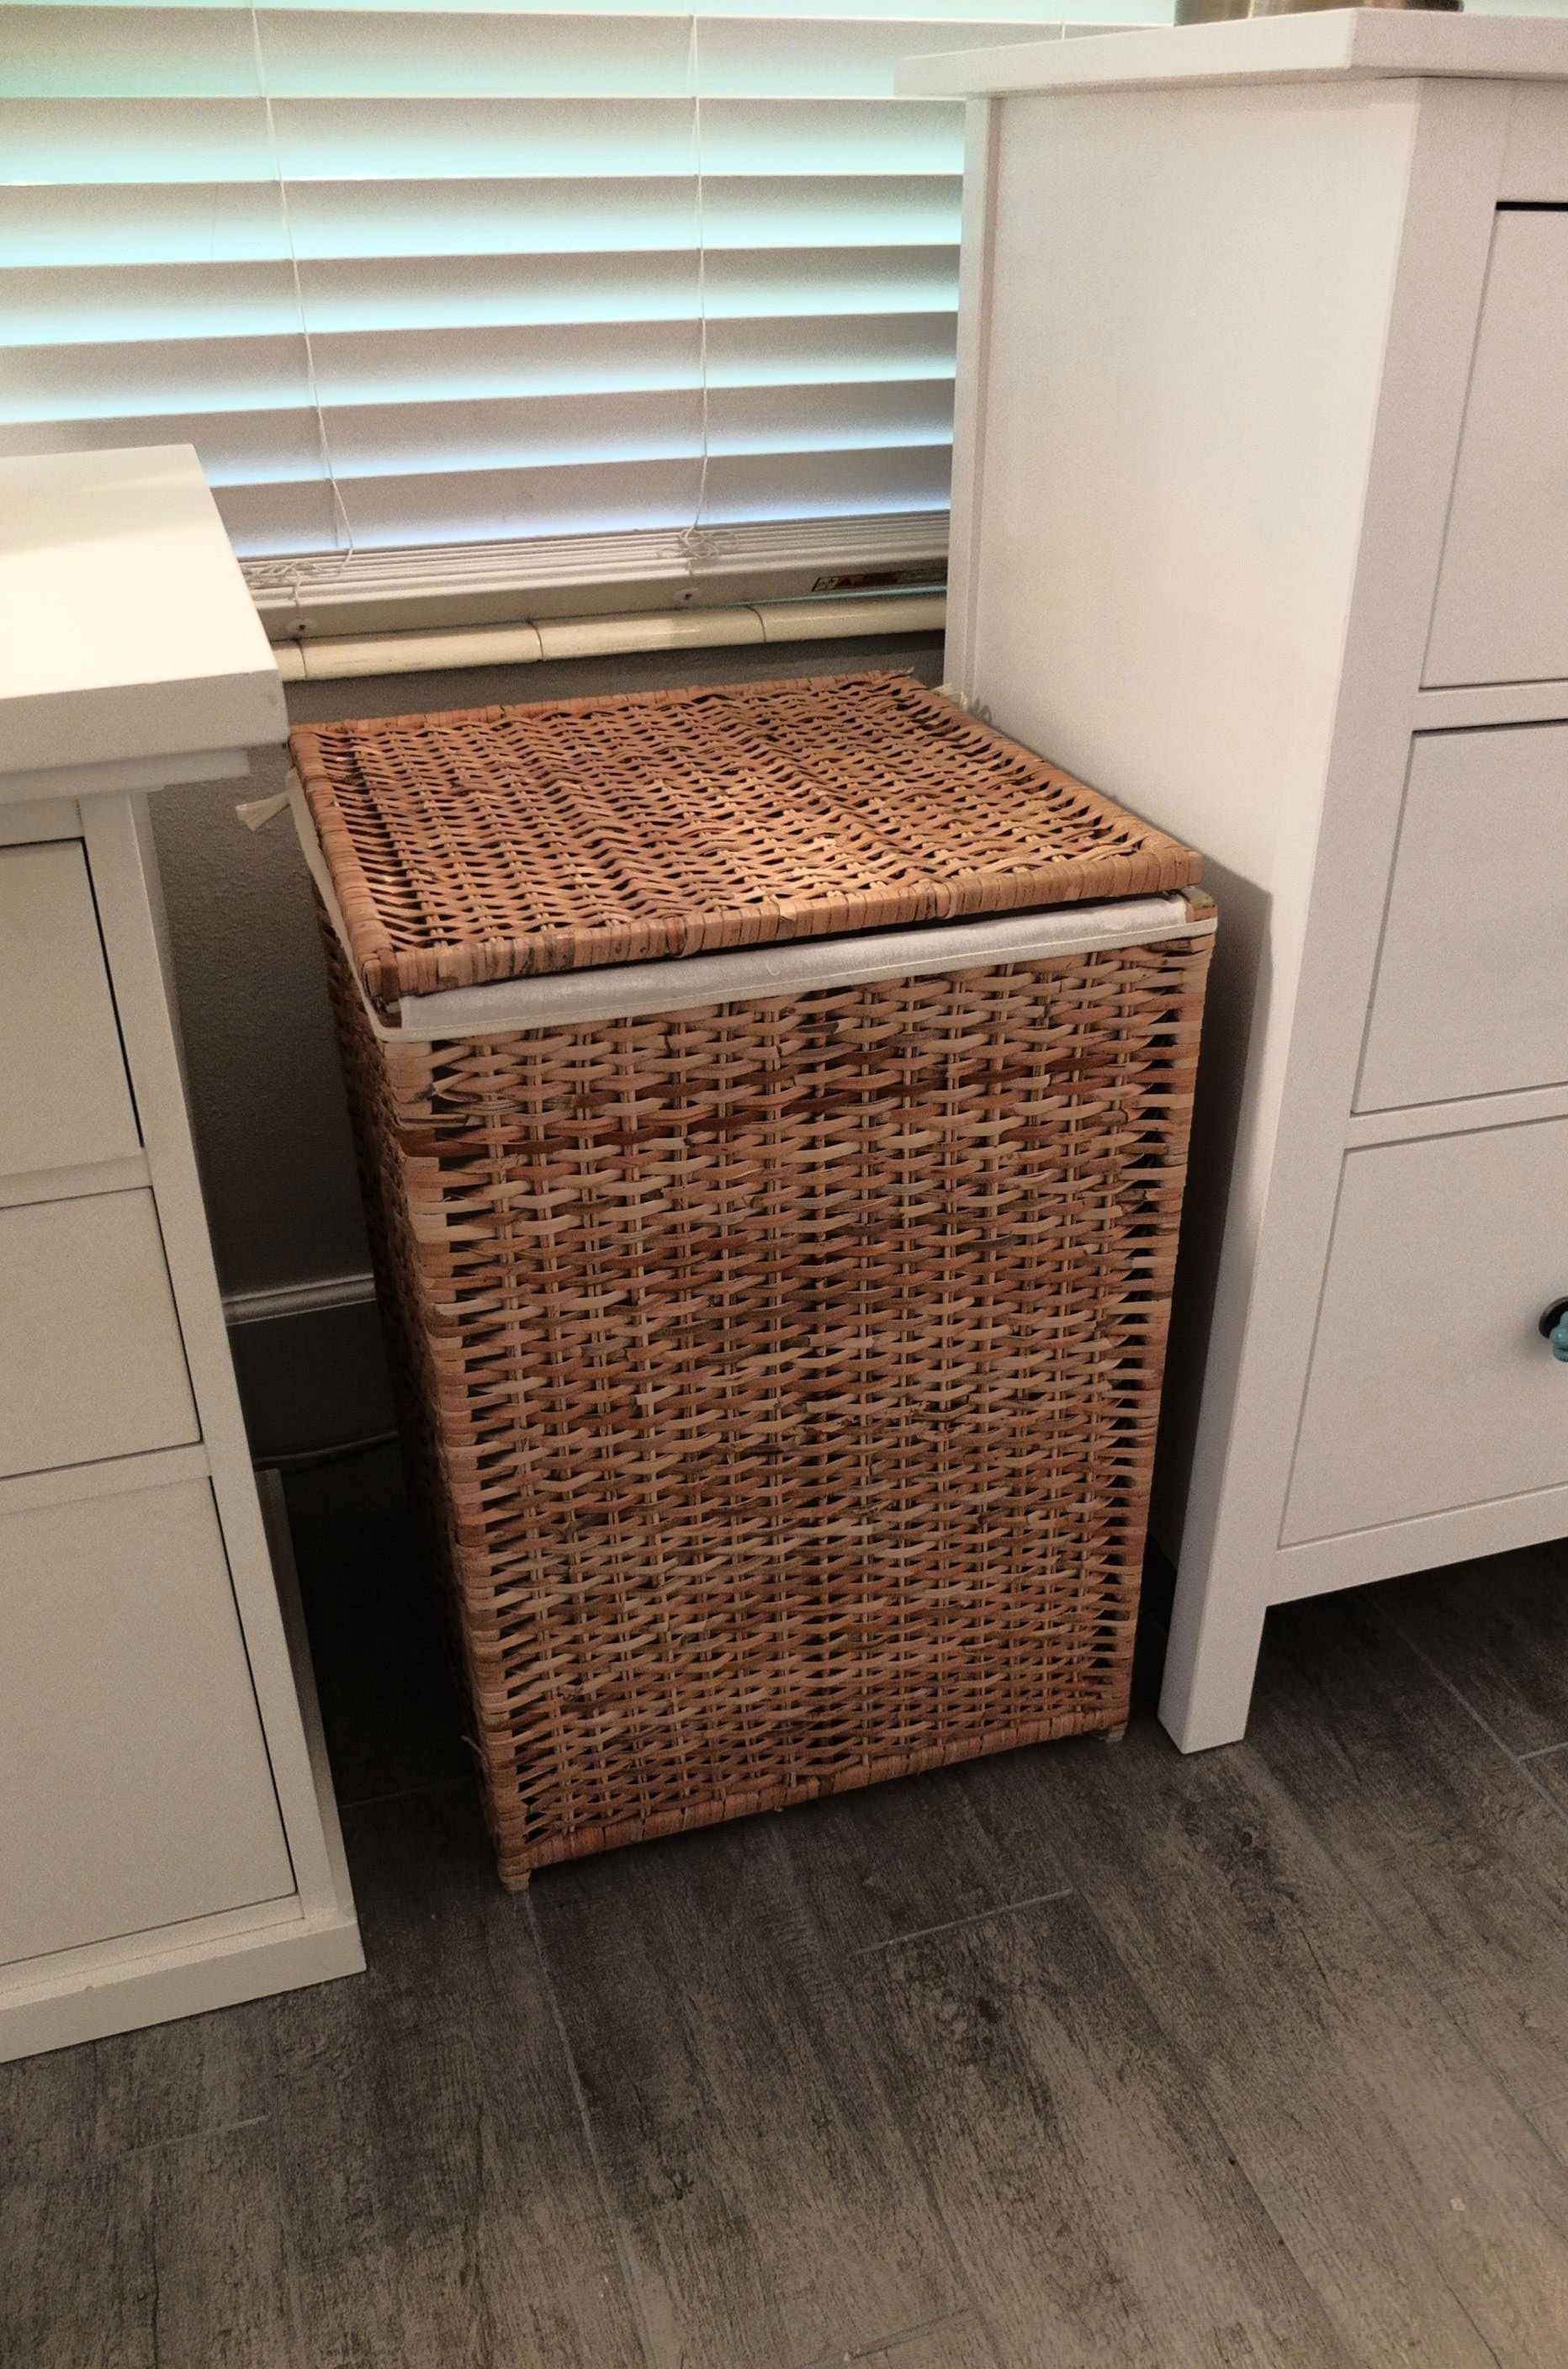 Best Branäs Laundry Basket With Lining Rattan Ikea Home Tour Makeovers Bedroom Hamper Laundry With Pictures